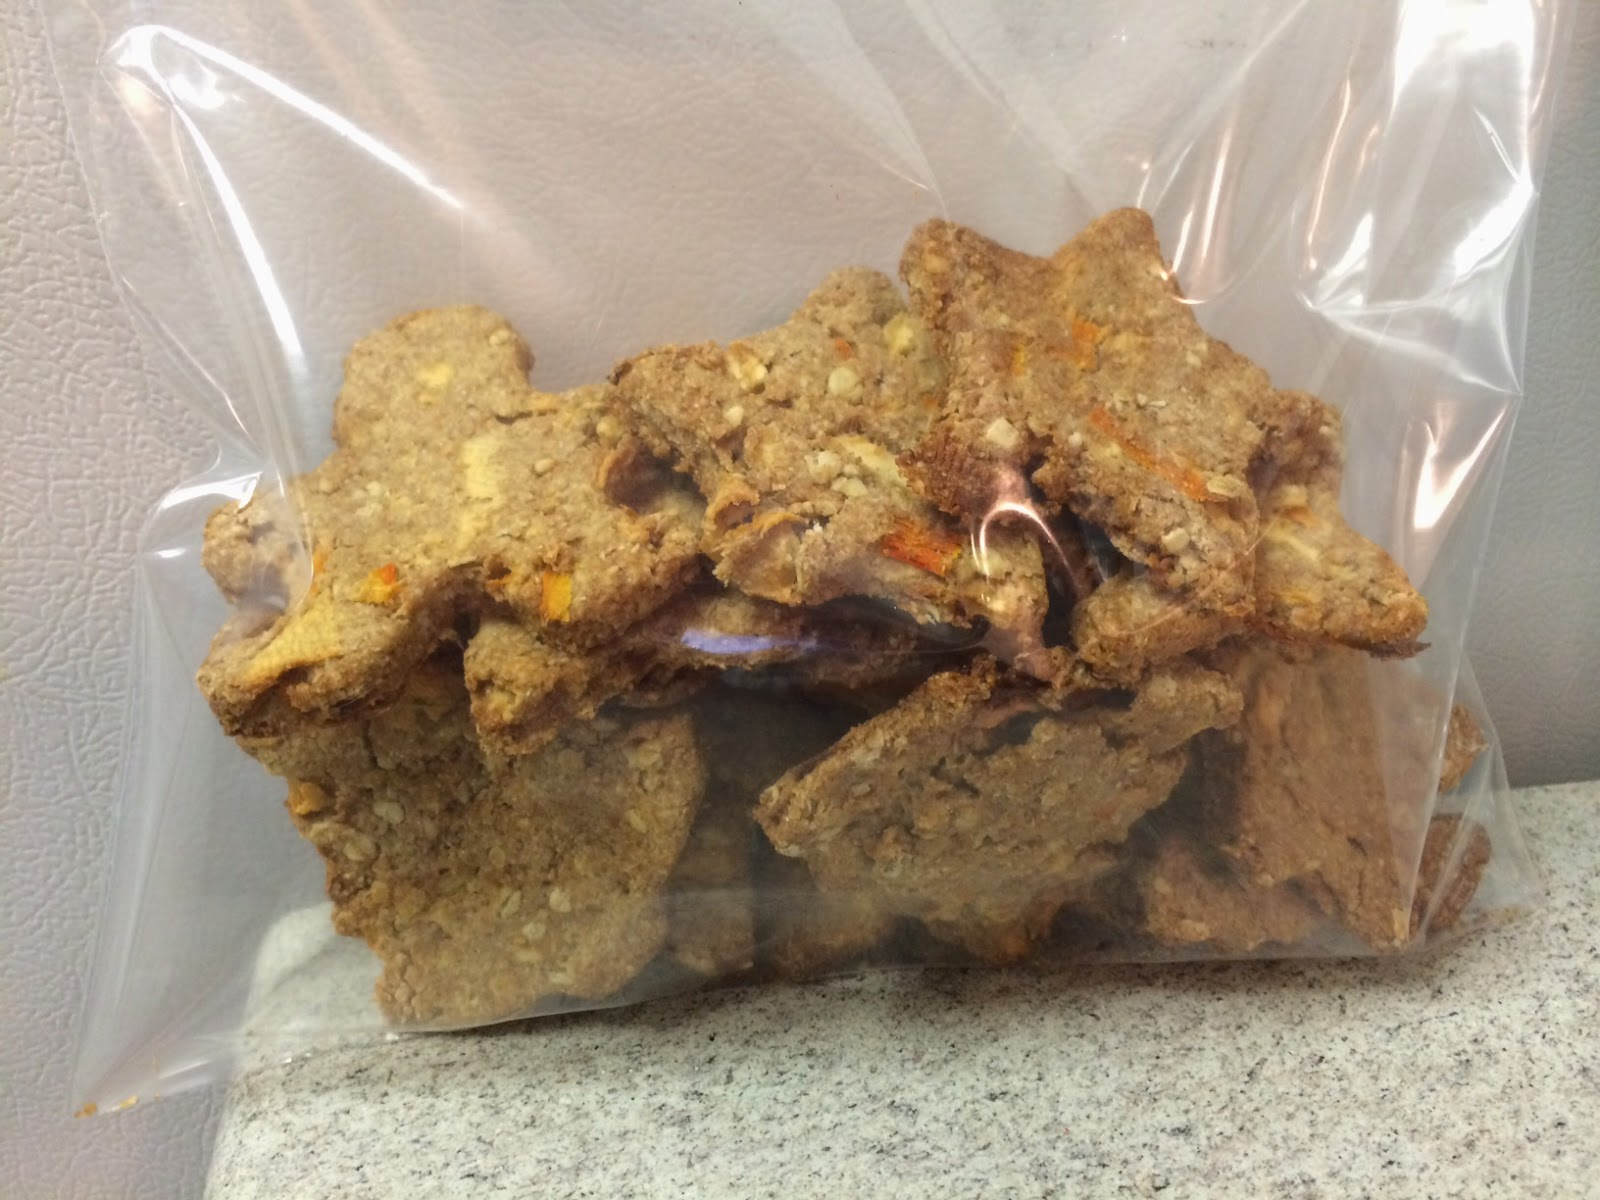 homemade dog treats stored in a bag